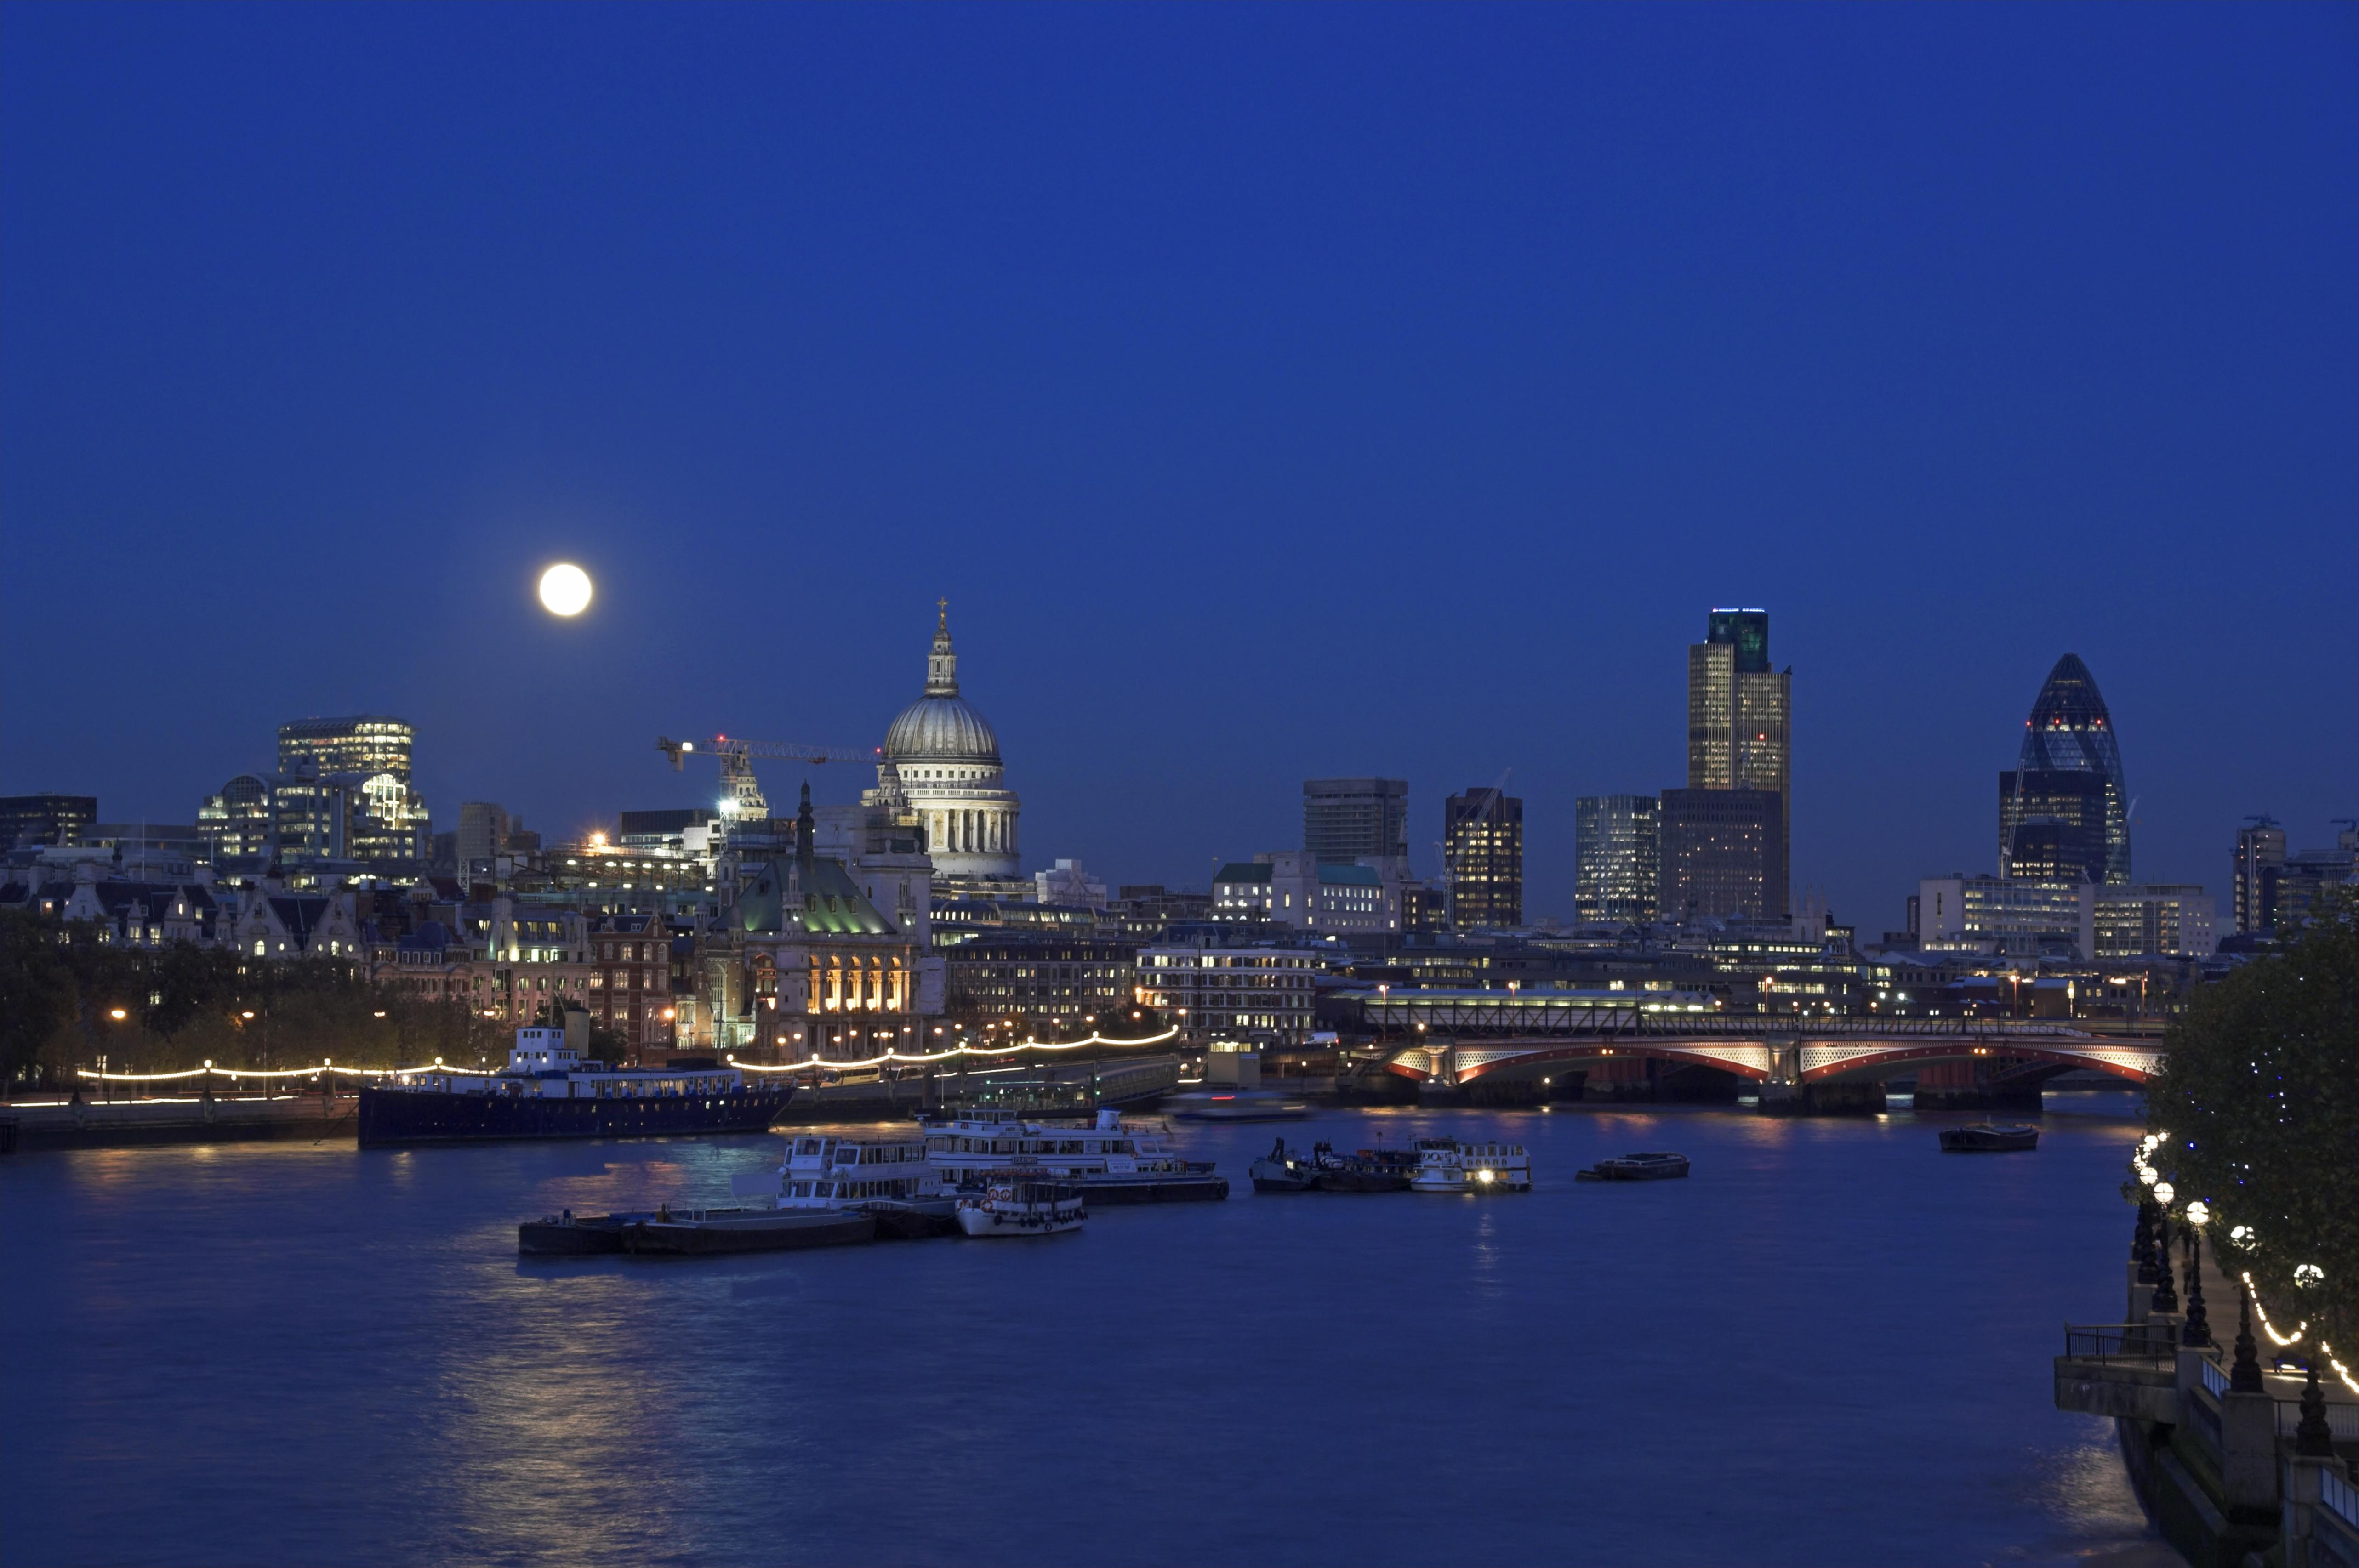 A supermoon appears significantly bigger than a normal full moon